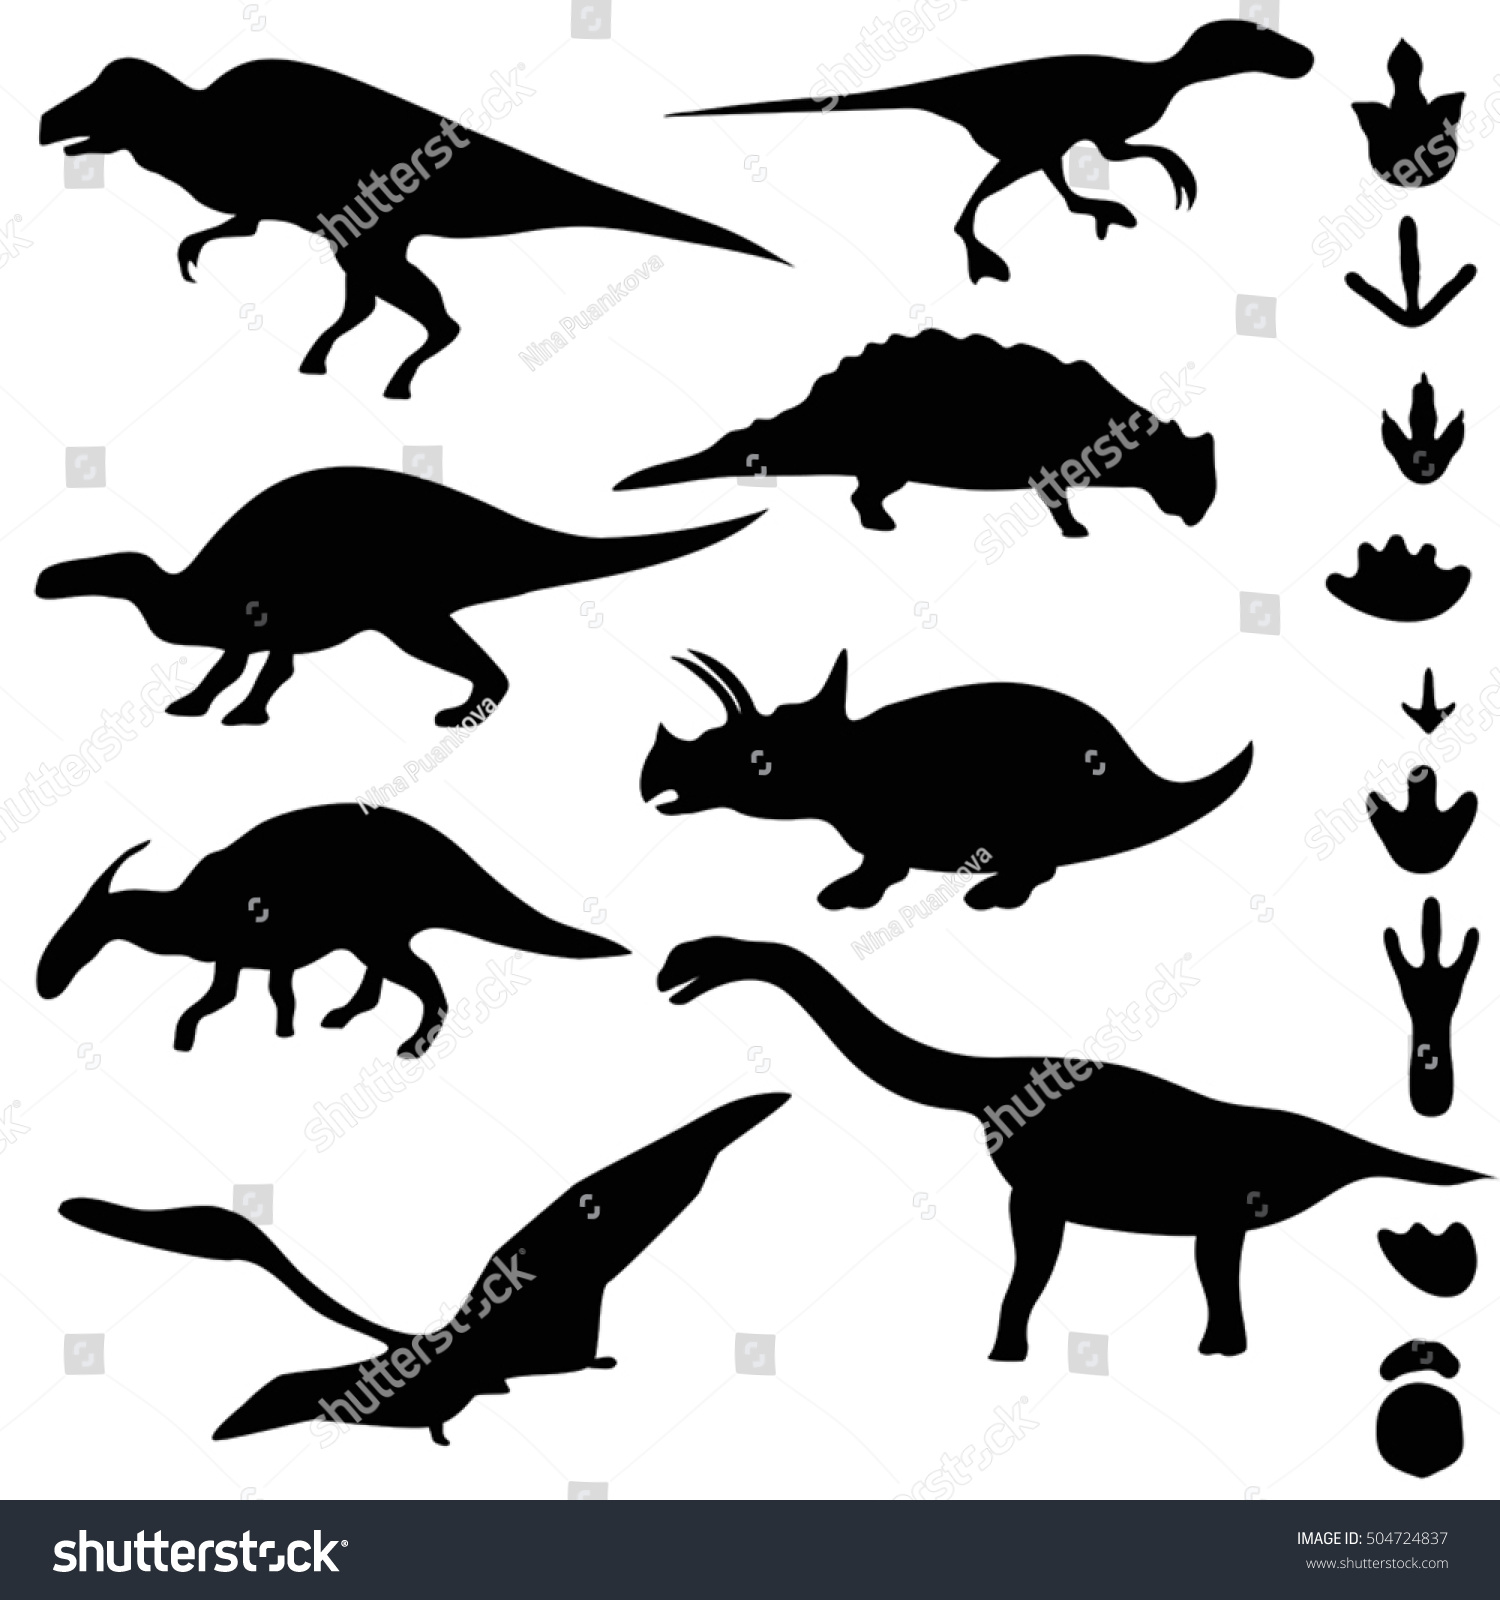 Symbols Of Dinosaurs And Dinosaur Footprints Collection Silhouettes